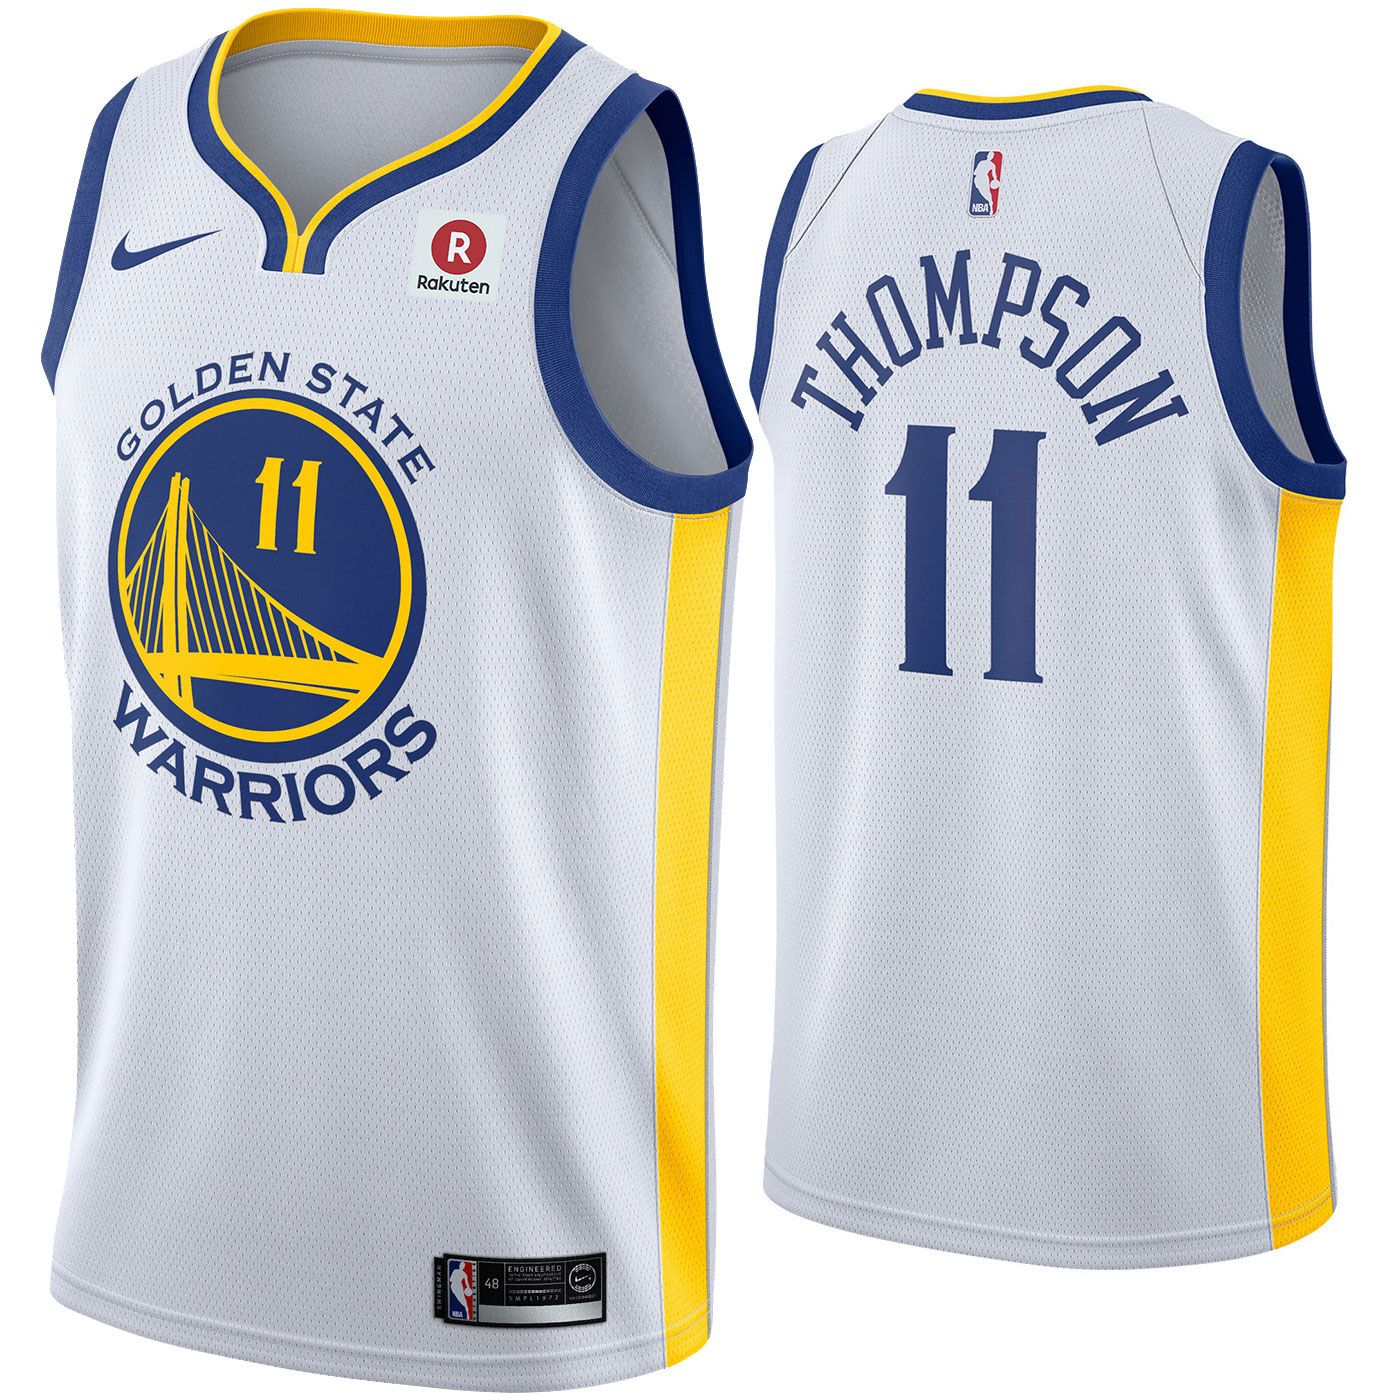 on sale baa8f 9bfdf gsw home jersey